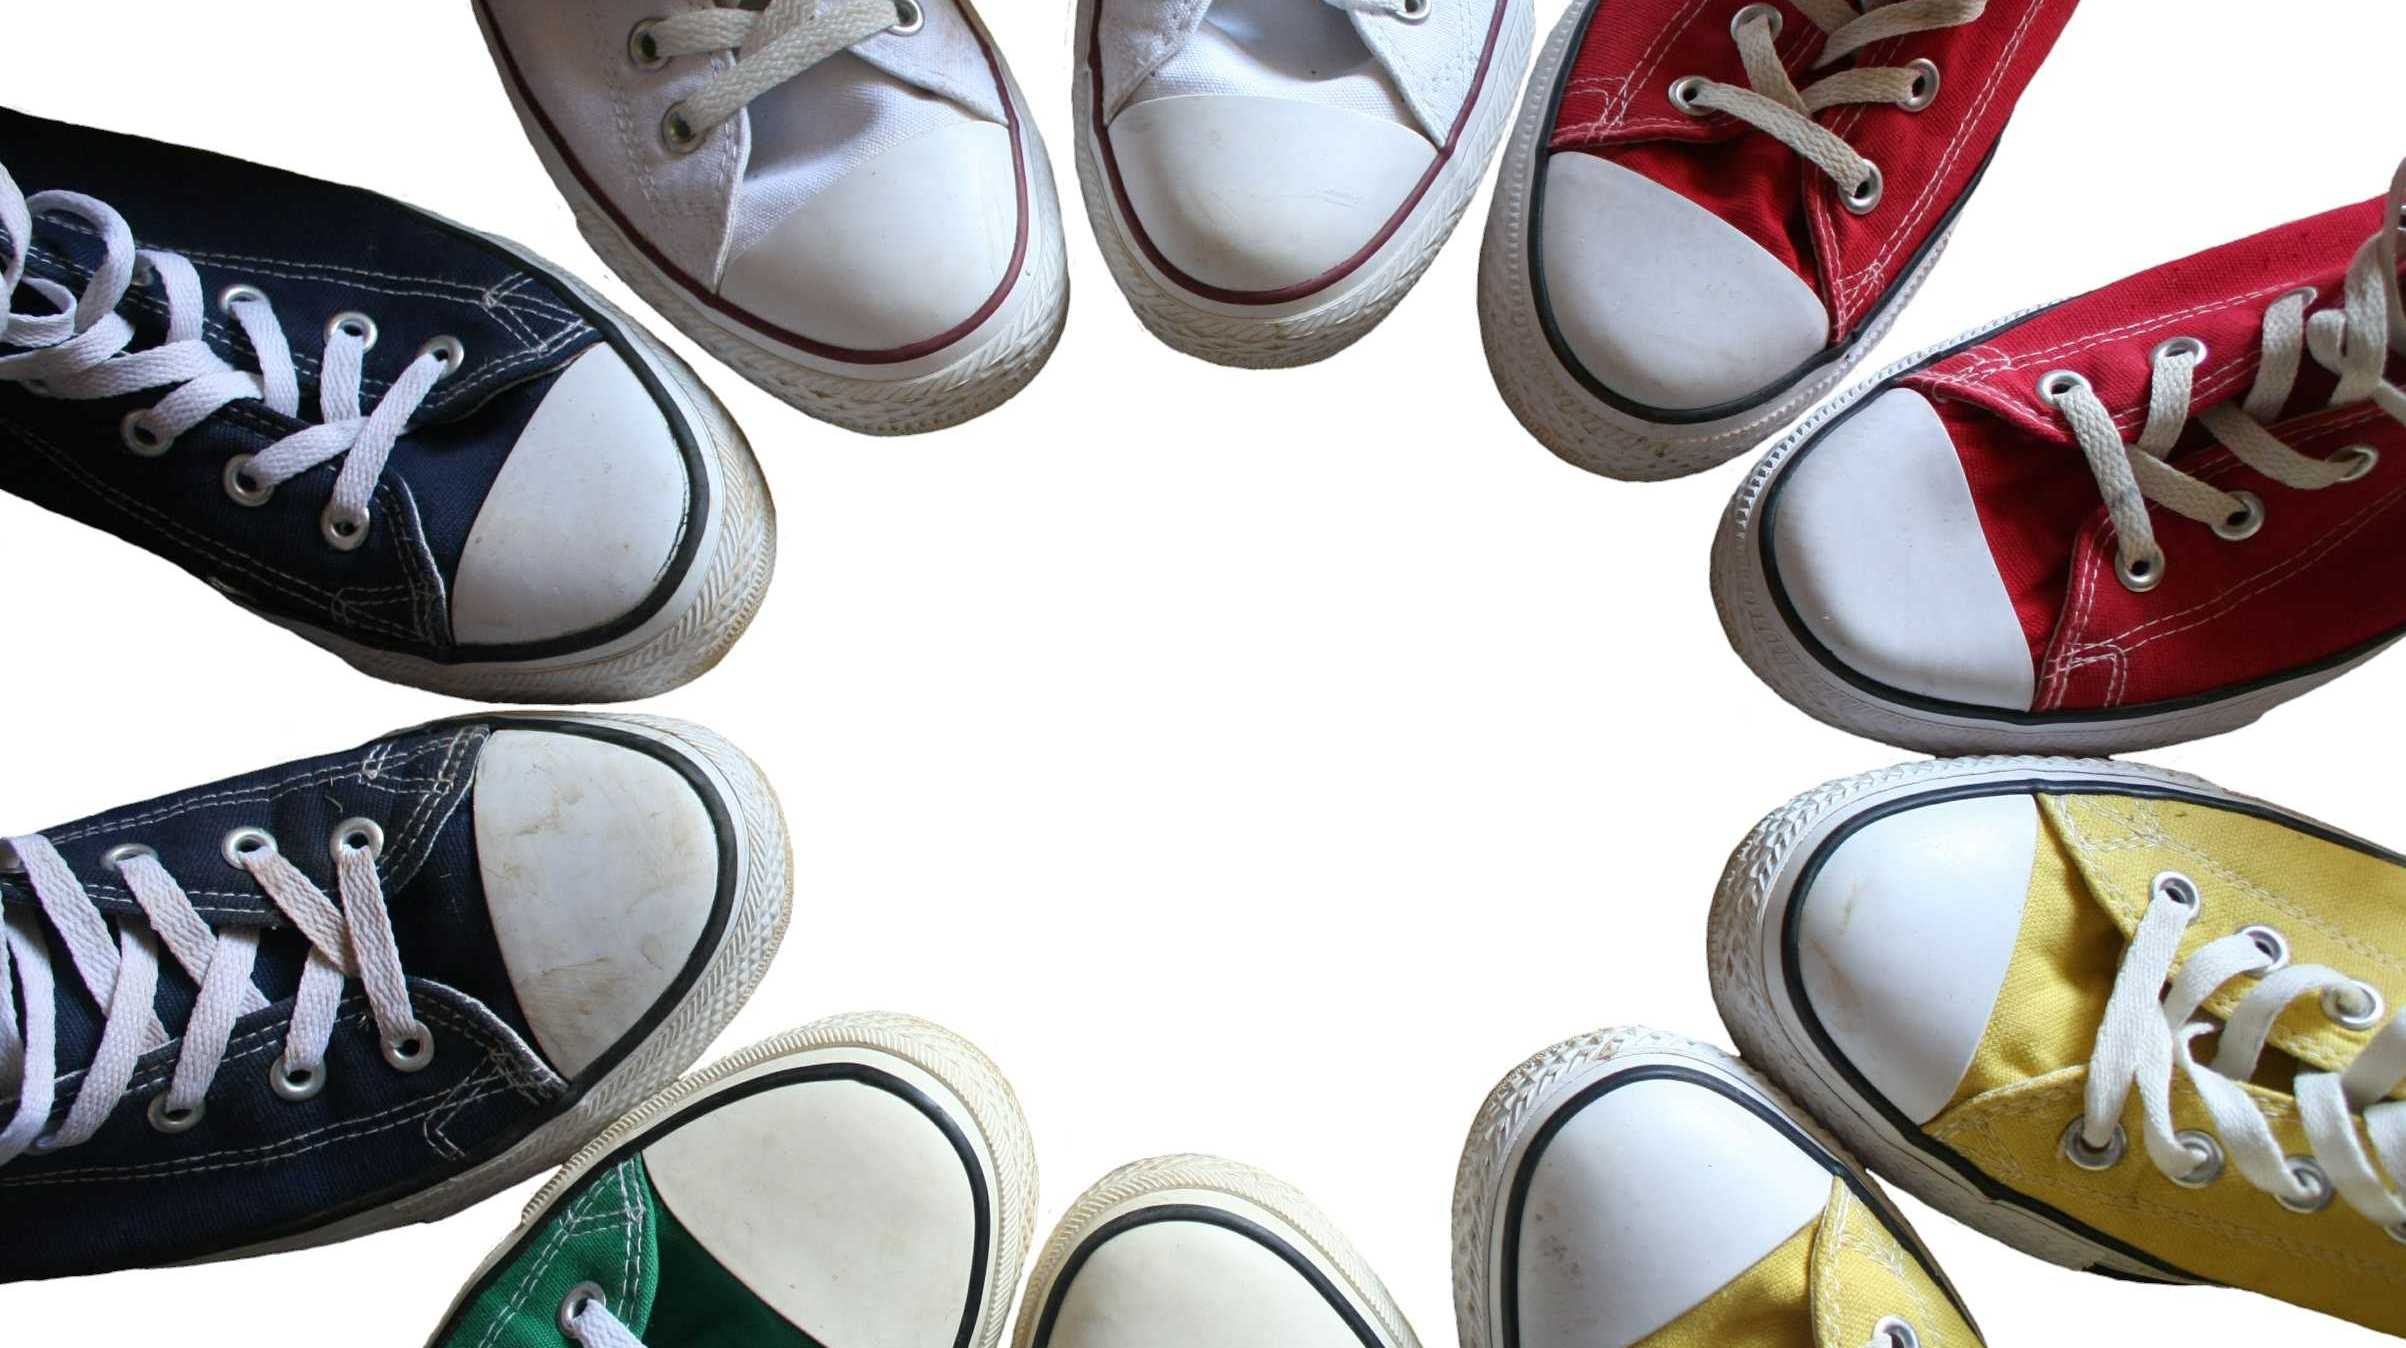 Stormen 2020 sneakers-Image by Alexas_Fotos from Pixabay.jpg